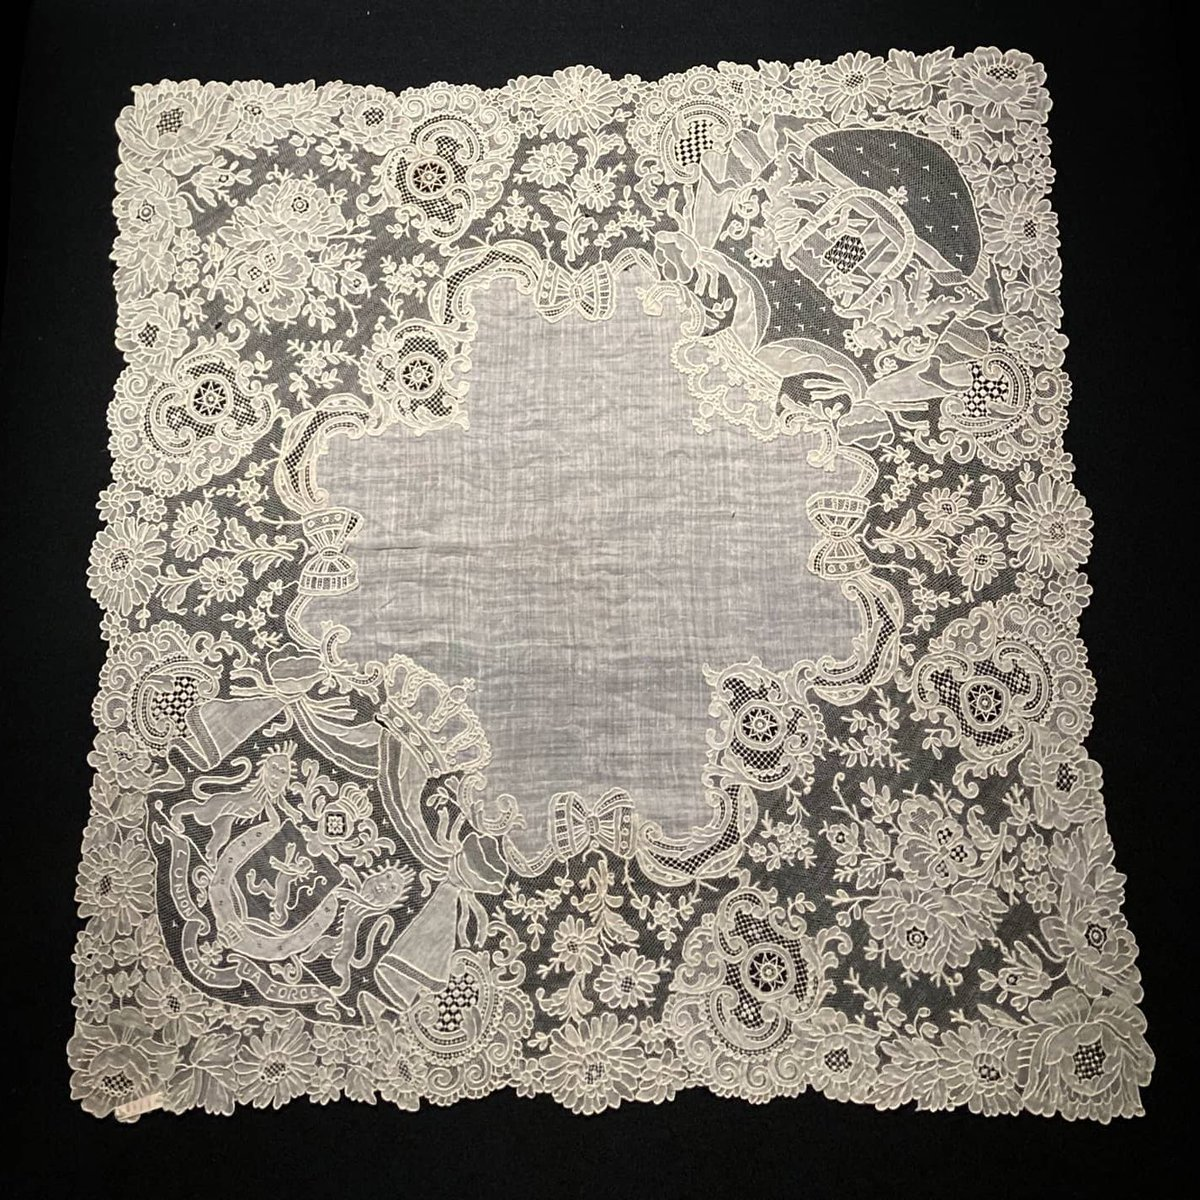 Two royal handkerchiefs from our lace collections.  Both belonged to the Belgian queen Elisabeth, wife of Albert I. Before their marriage she was princess of Wittelsbach and duchess of Bavaria.   On both handkerchiefs you can see the coat of arms of Belgium and Bavaria. https://t.co/5JfF4xfJmp